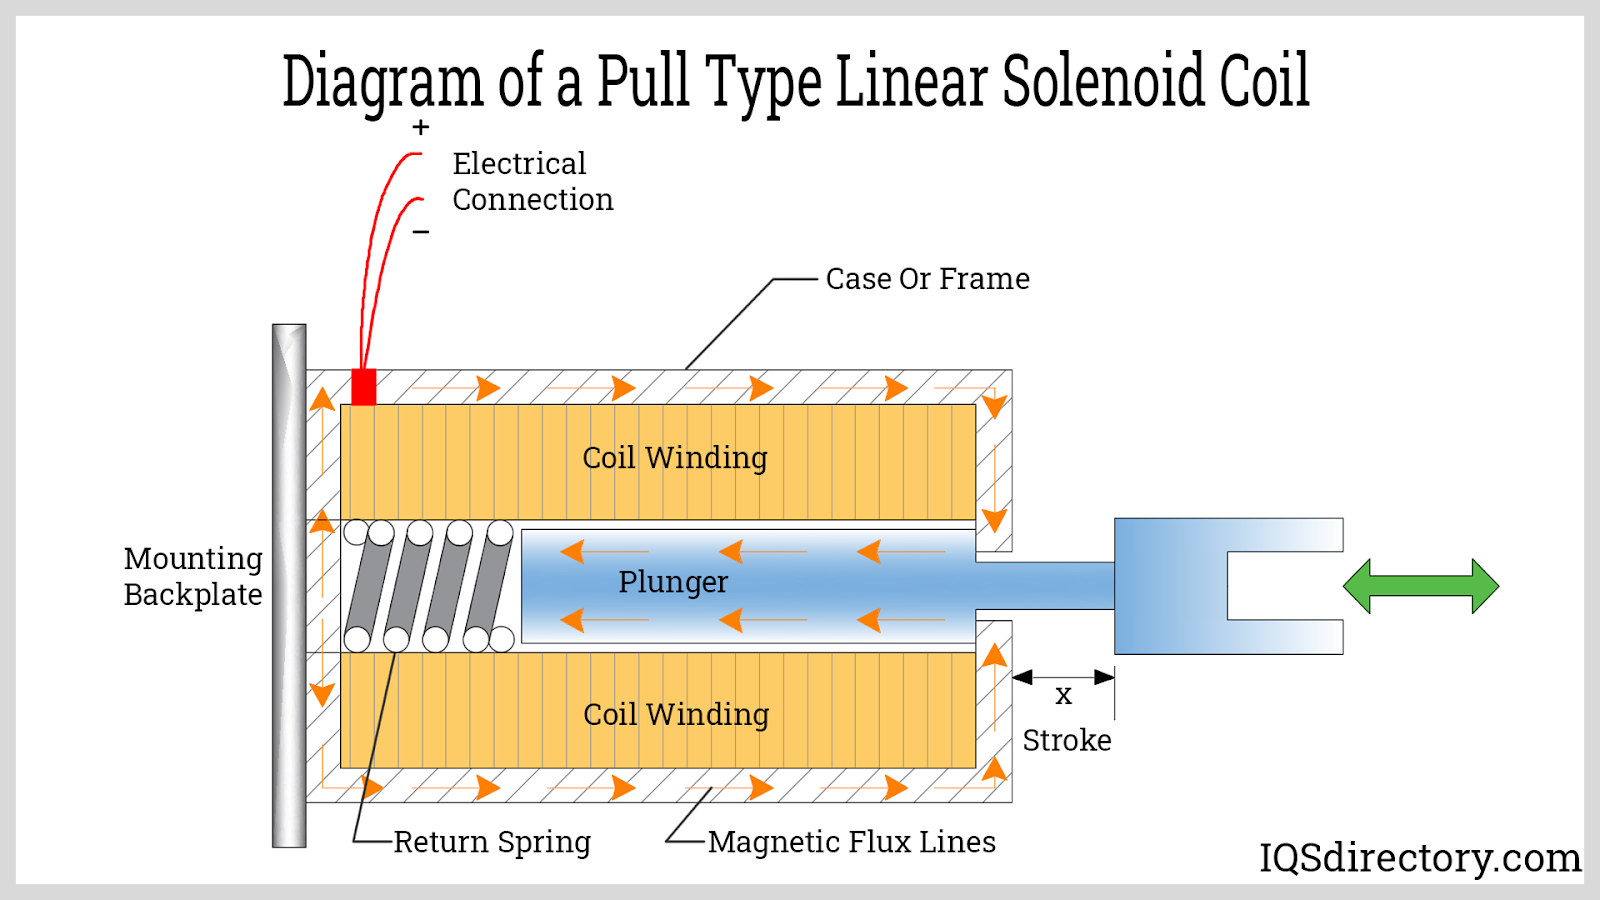 Diagram of a Pull Type Linear Solenoid Coil